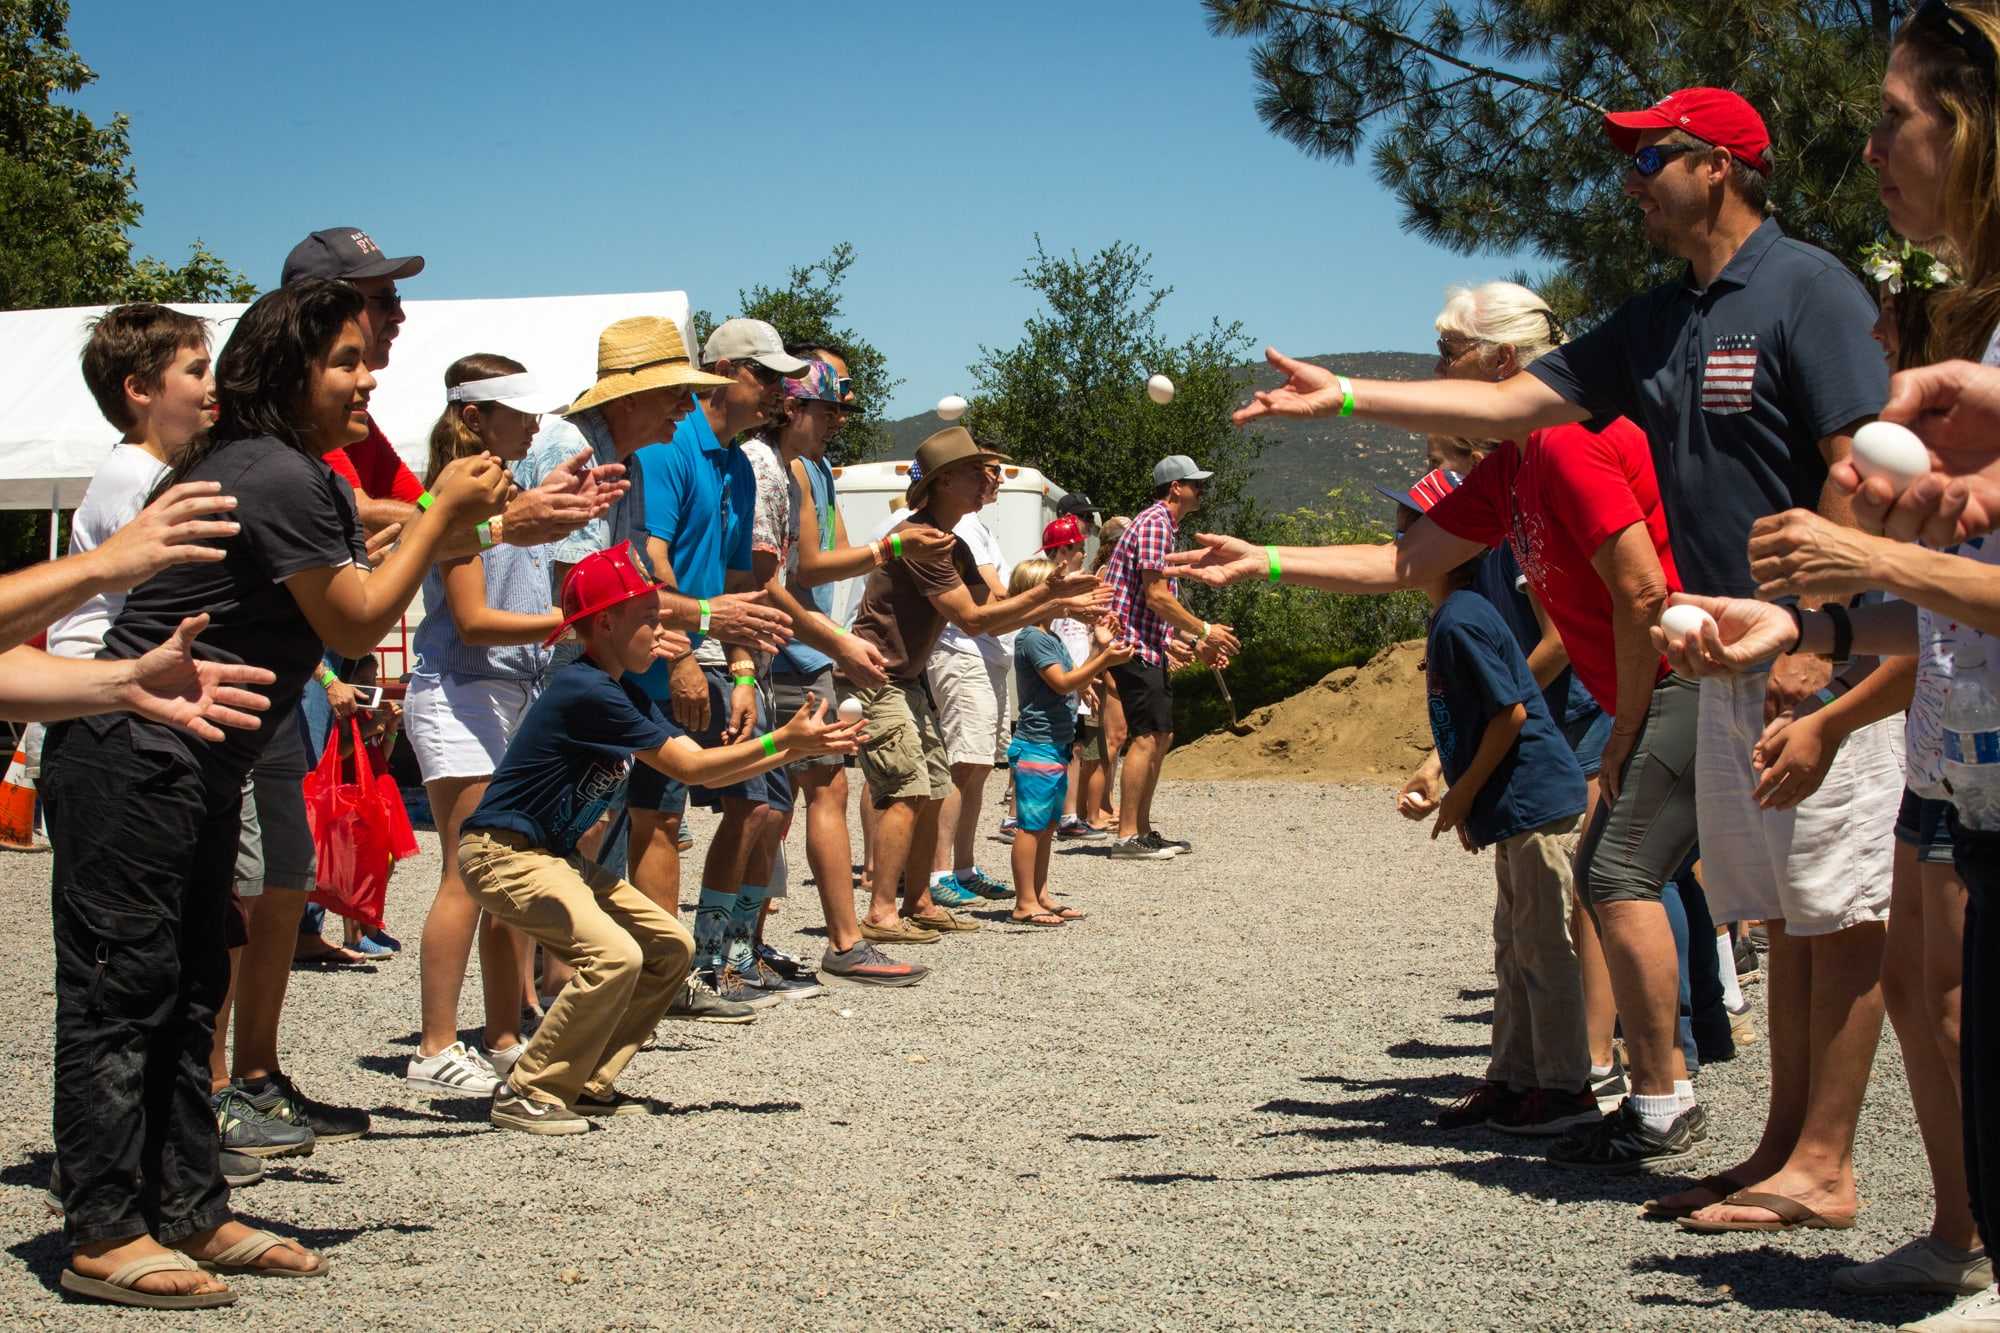 Residents of Elfin Forest and Harmony Grove, California, participate in an egg toss during the towns' 42nd annual Fourth of July parade and picnic. (Kailey Broussard/News21)